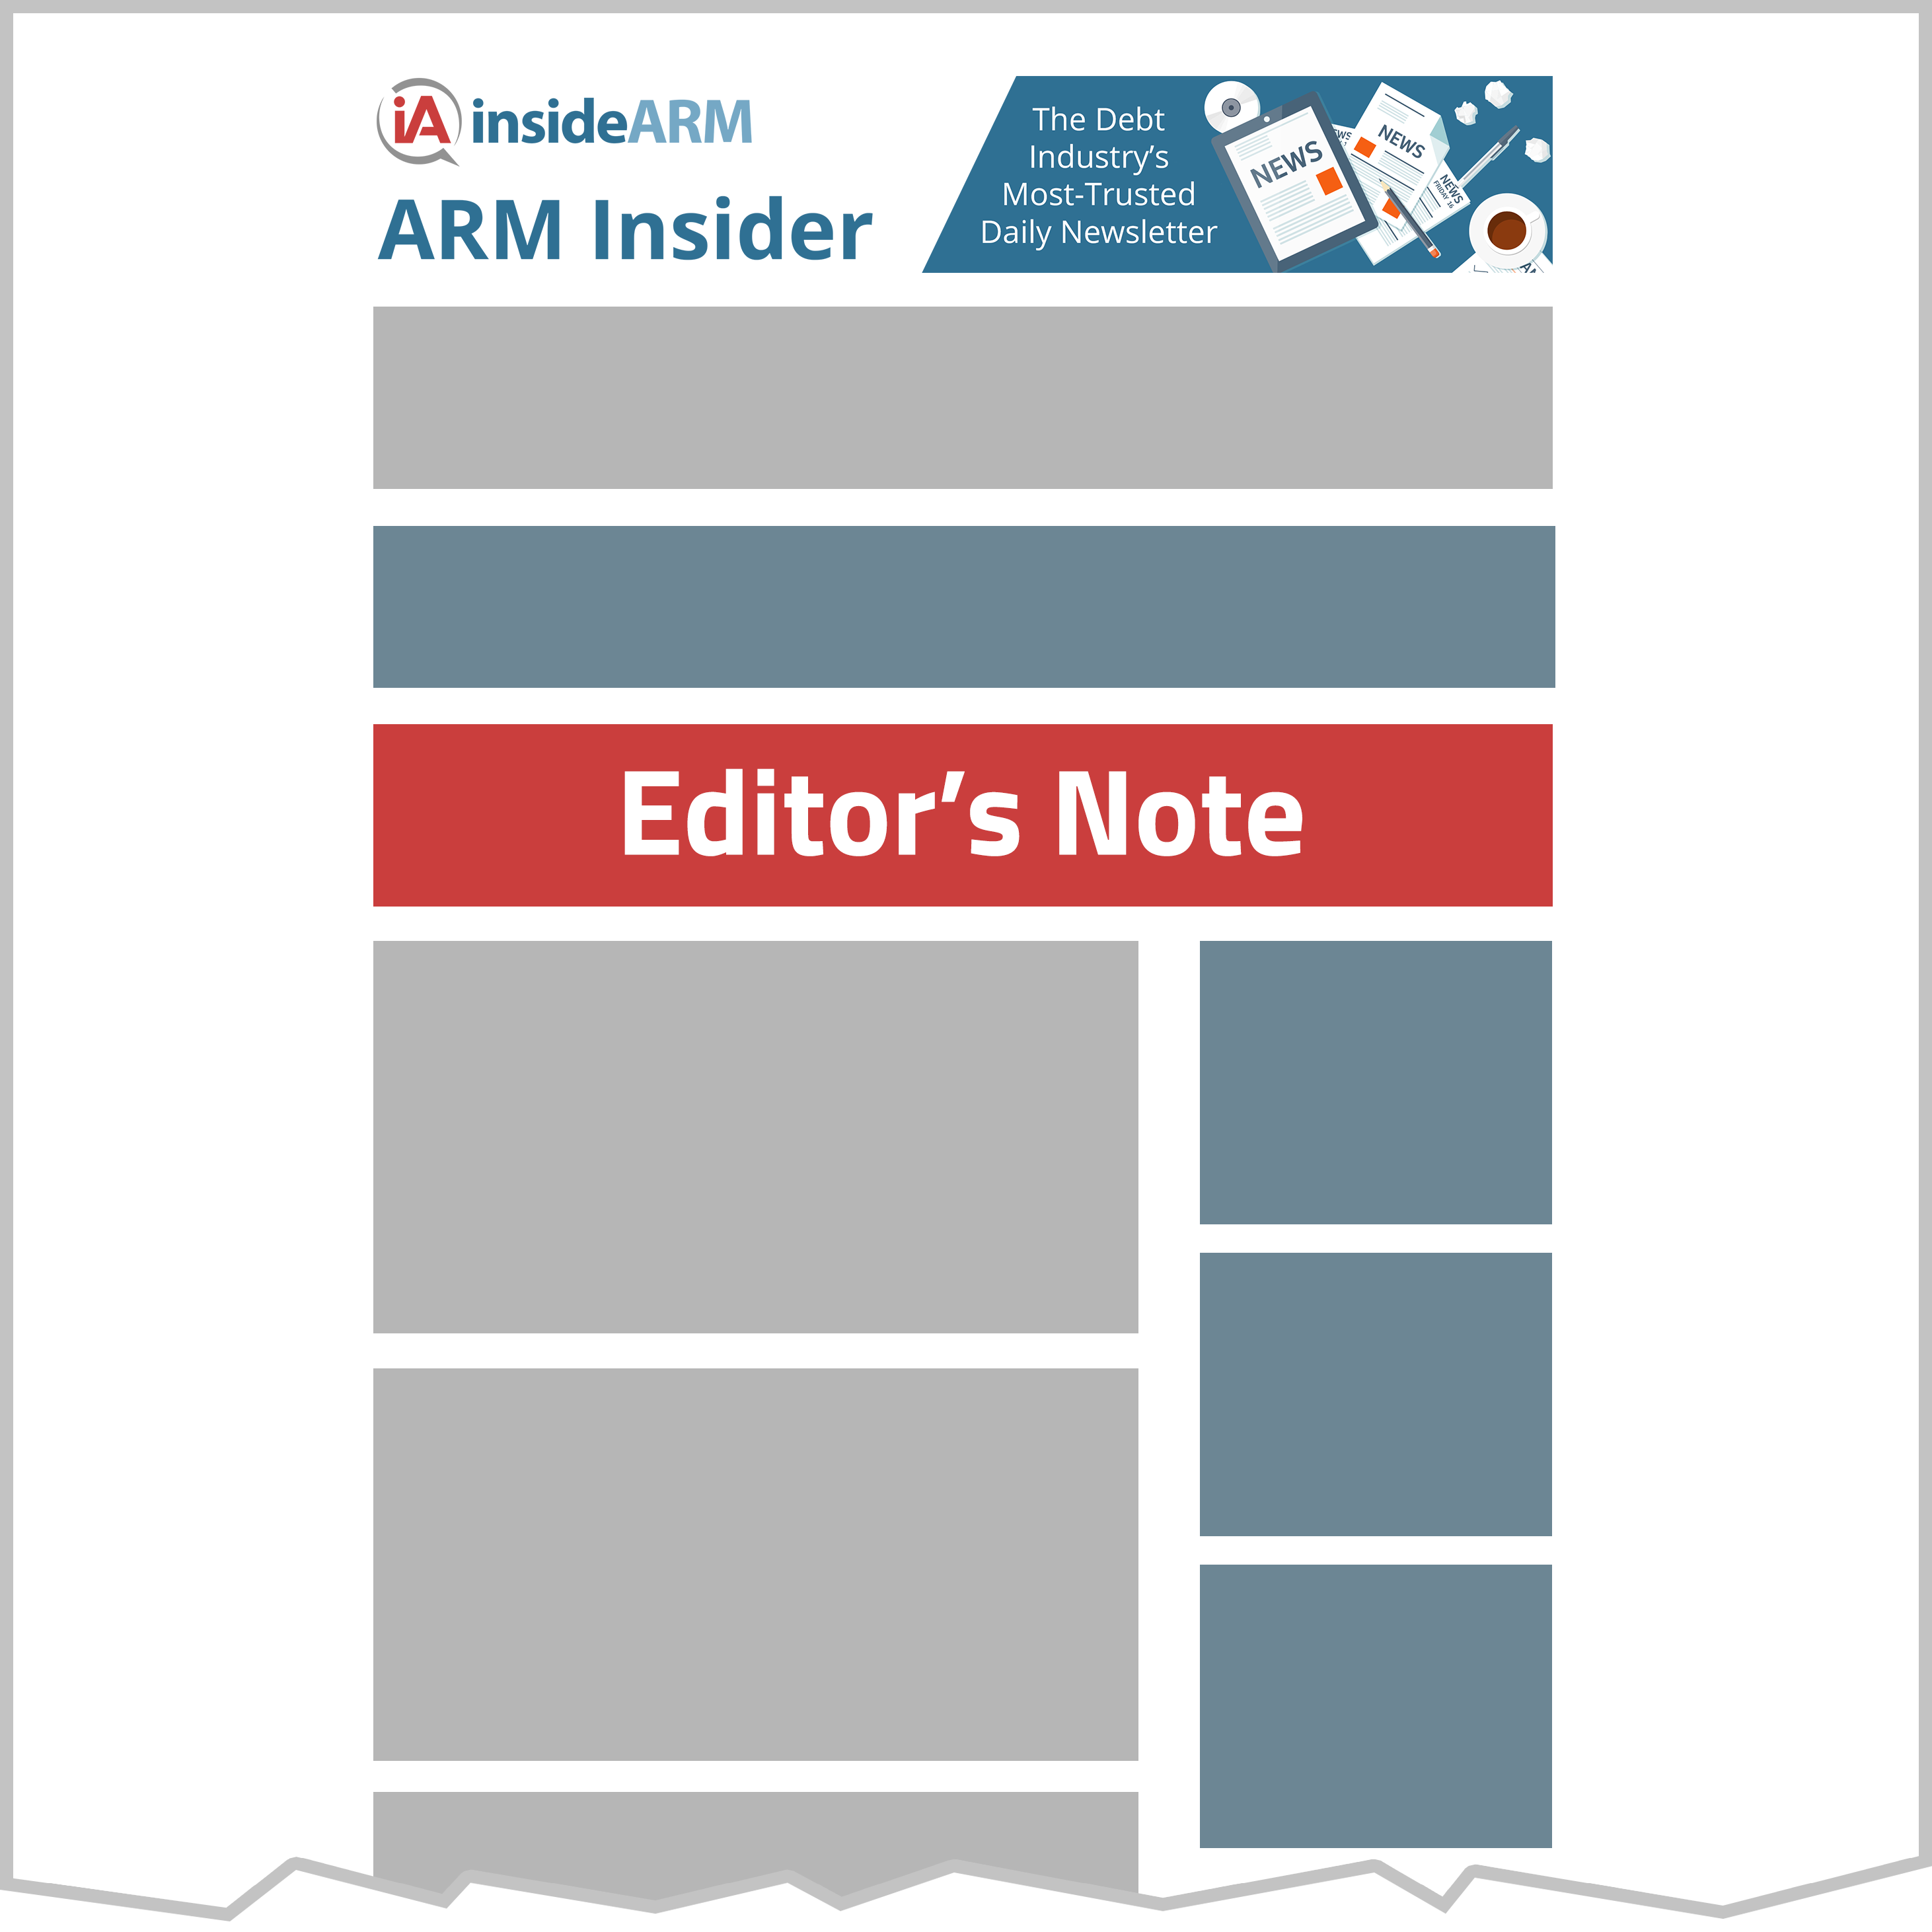 Diagram of editor's note placement